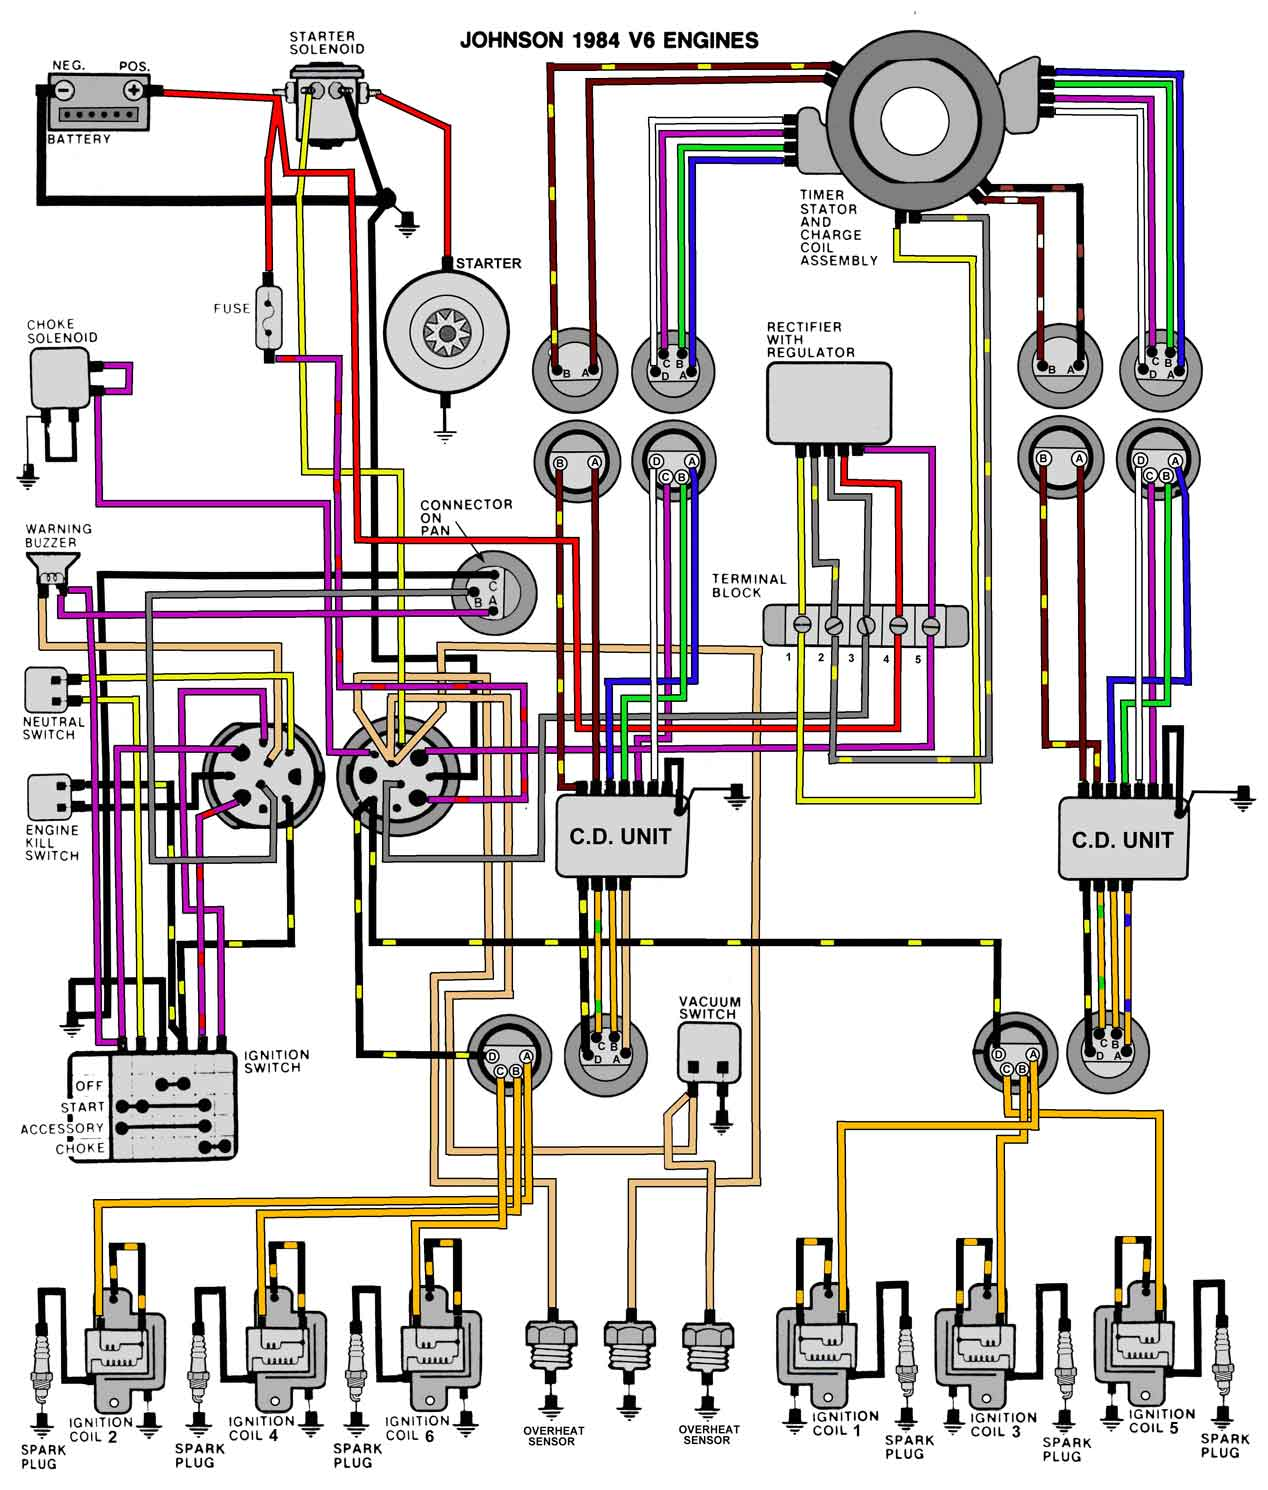 Boat Motor Wiring - Wiring Diagram Dash on combination double switch diagram, dual battery diagram, two float switch system schematic, two battery generator diagram, dual switch diagram, marine battery switch diagram, murphy switch diagram,